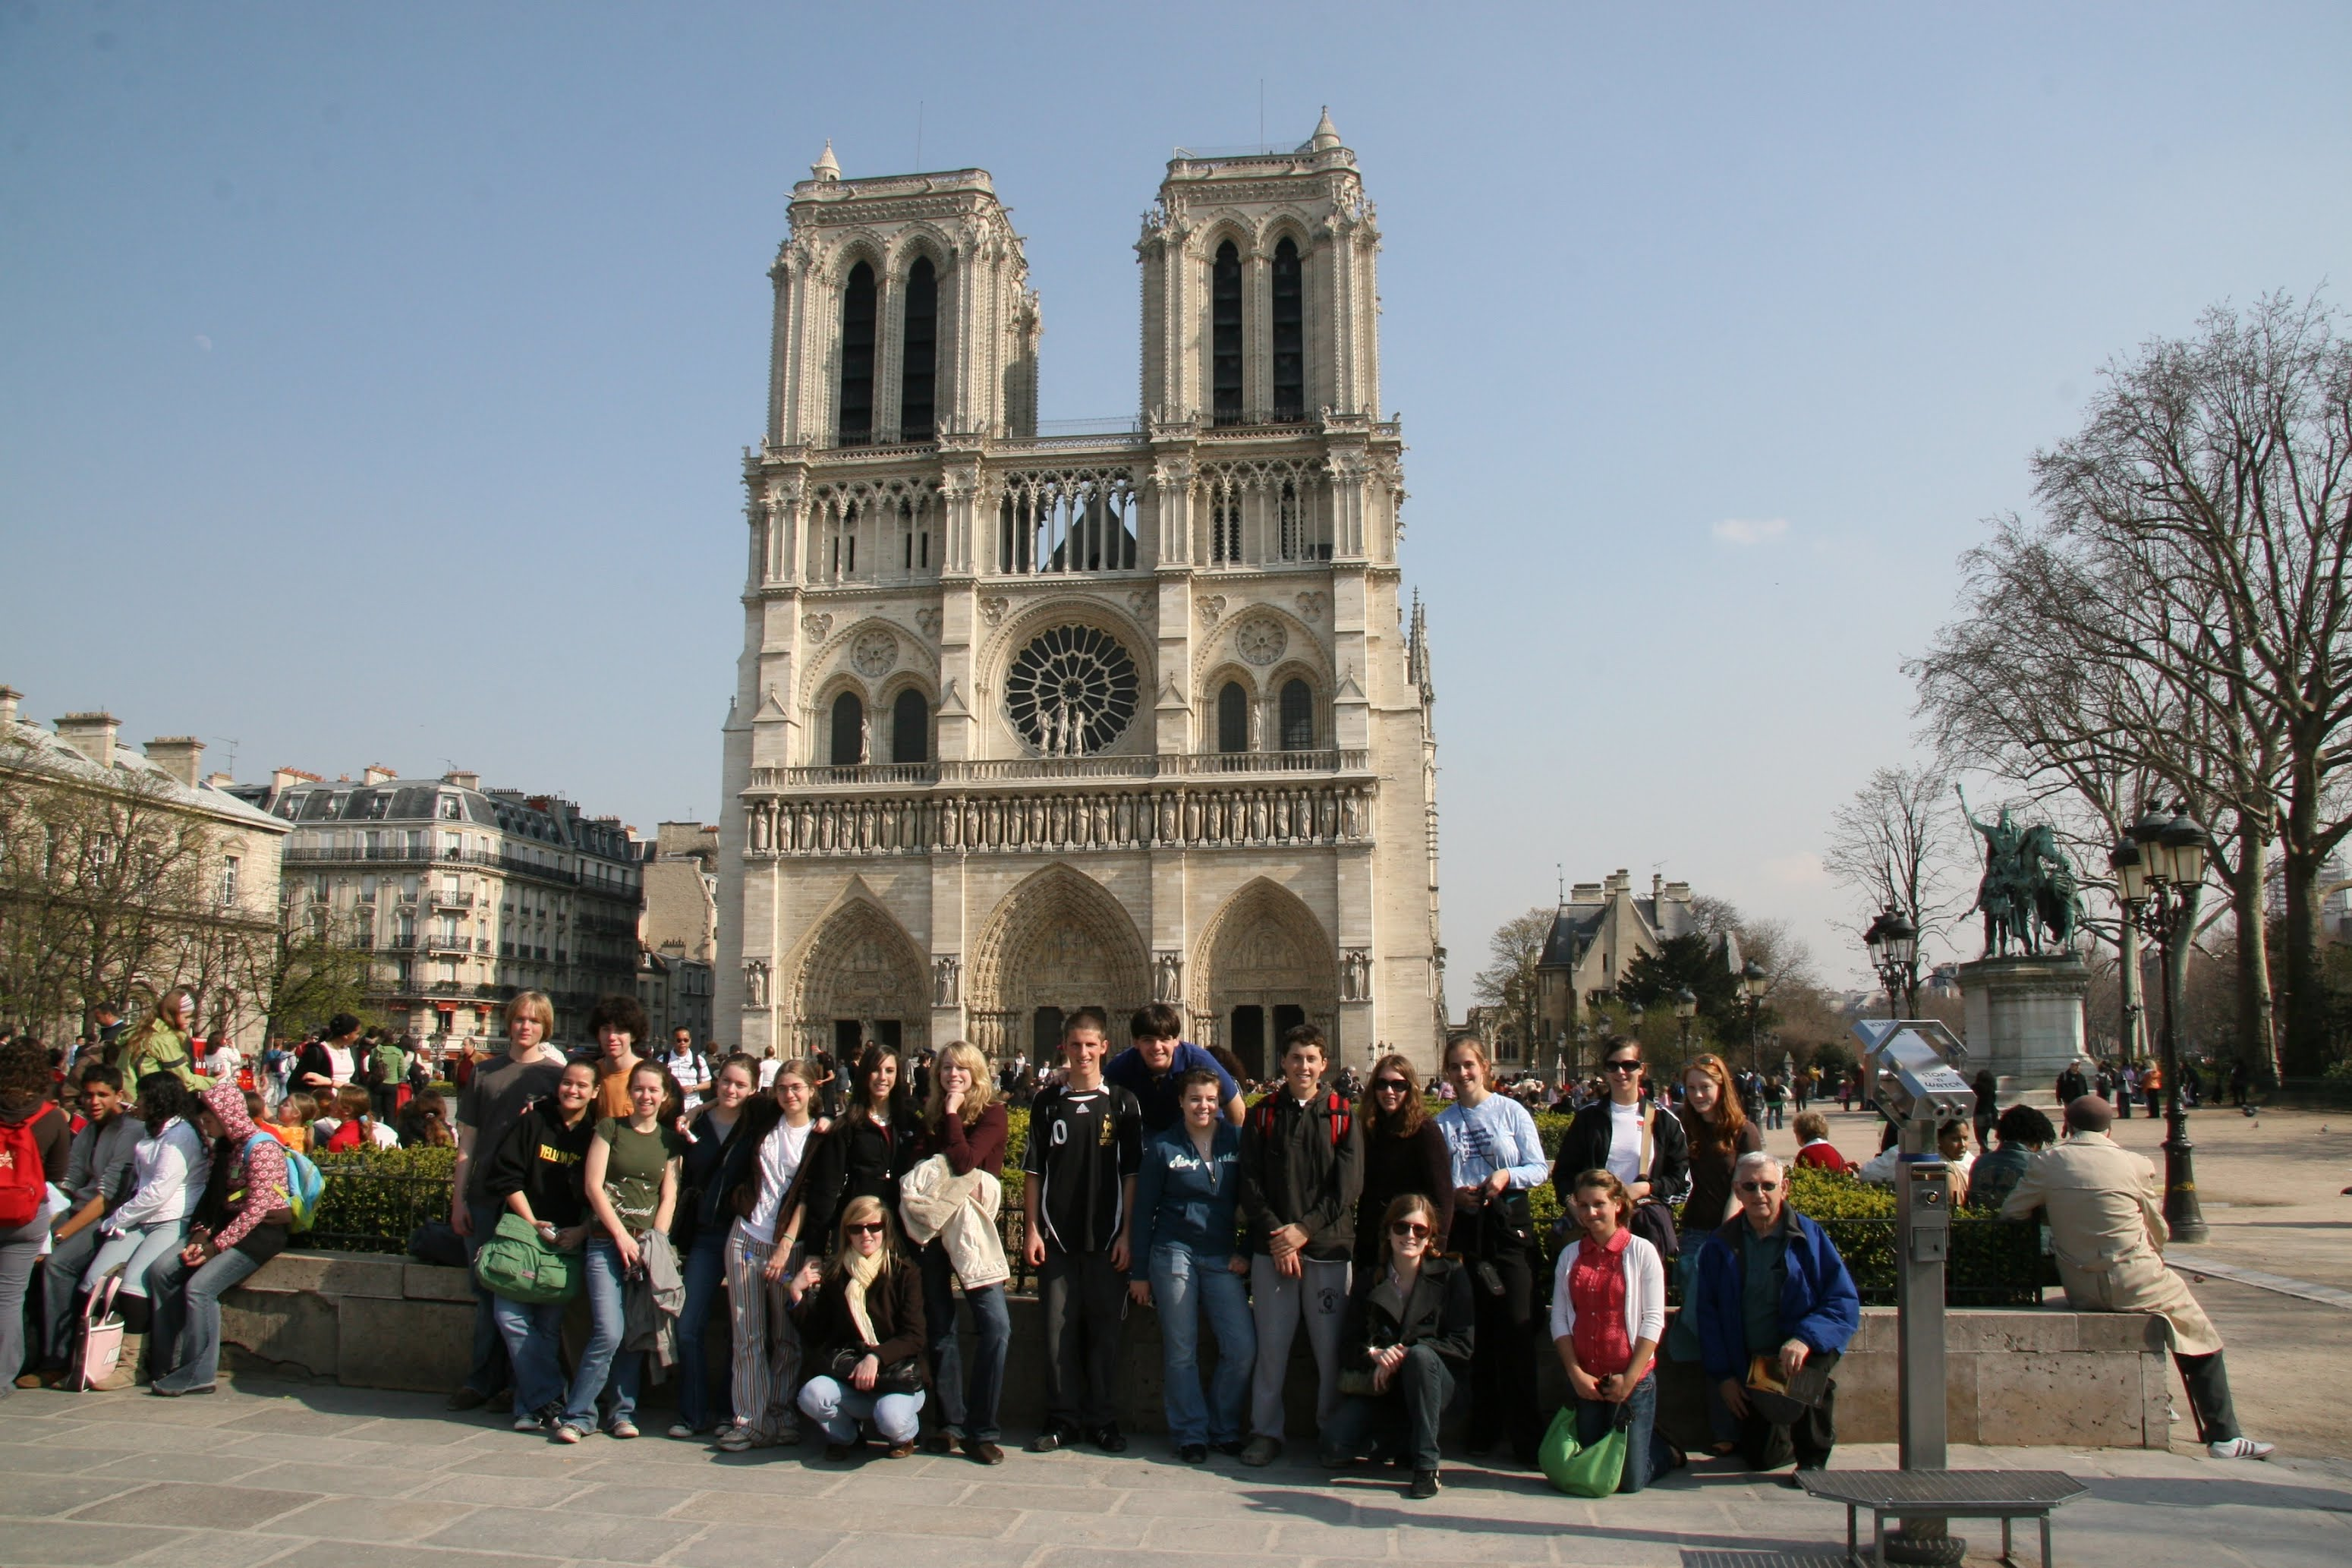 Monticello students at Notre-Dame de Paris, 2007